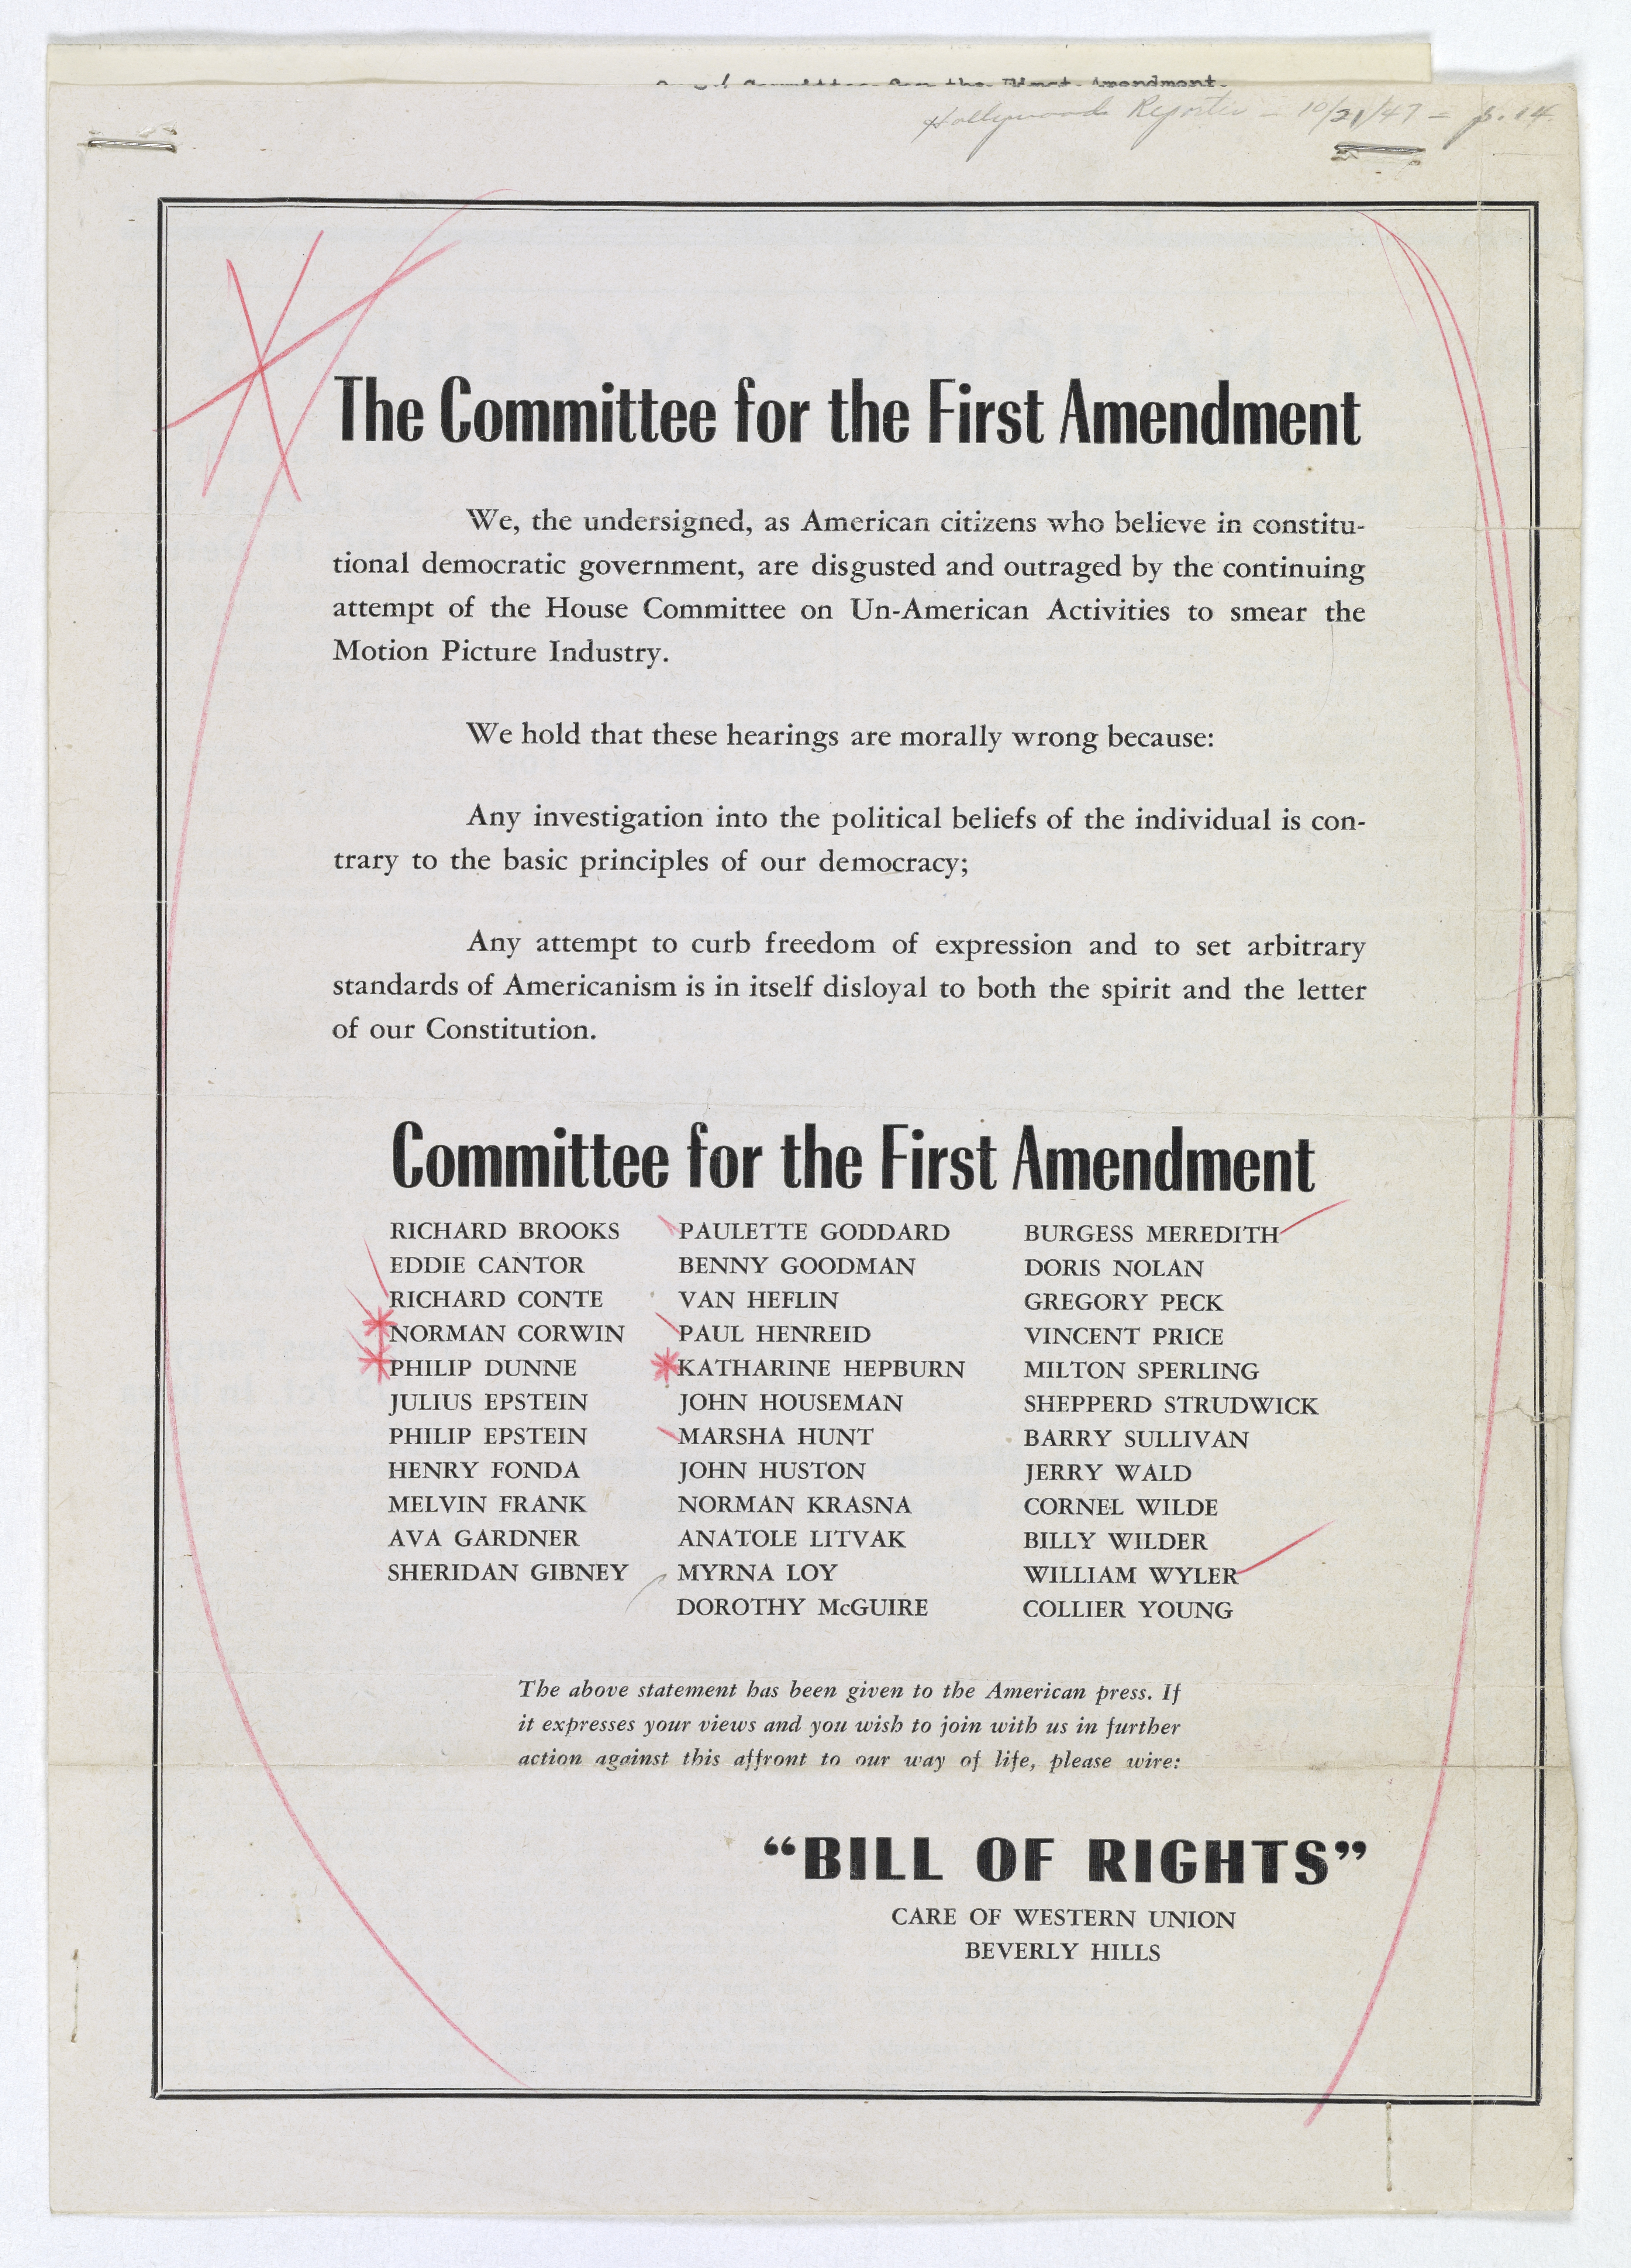 Statement of the Committee for the First Amendment